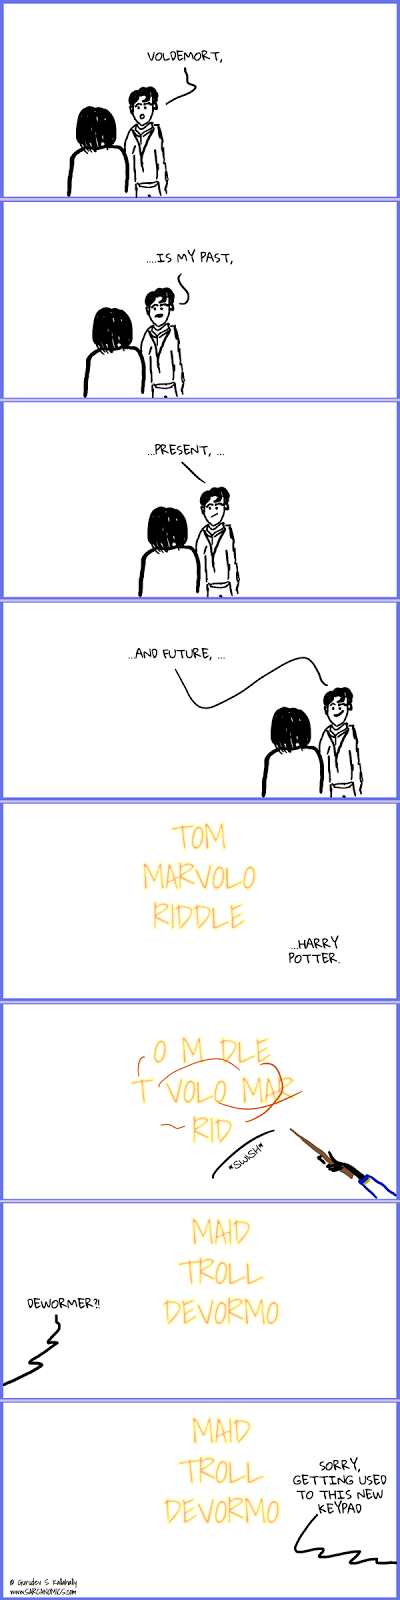 Tom Marvolo Riddle surprises Harry Potter with some letter play.